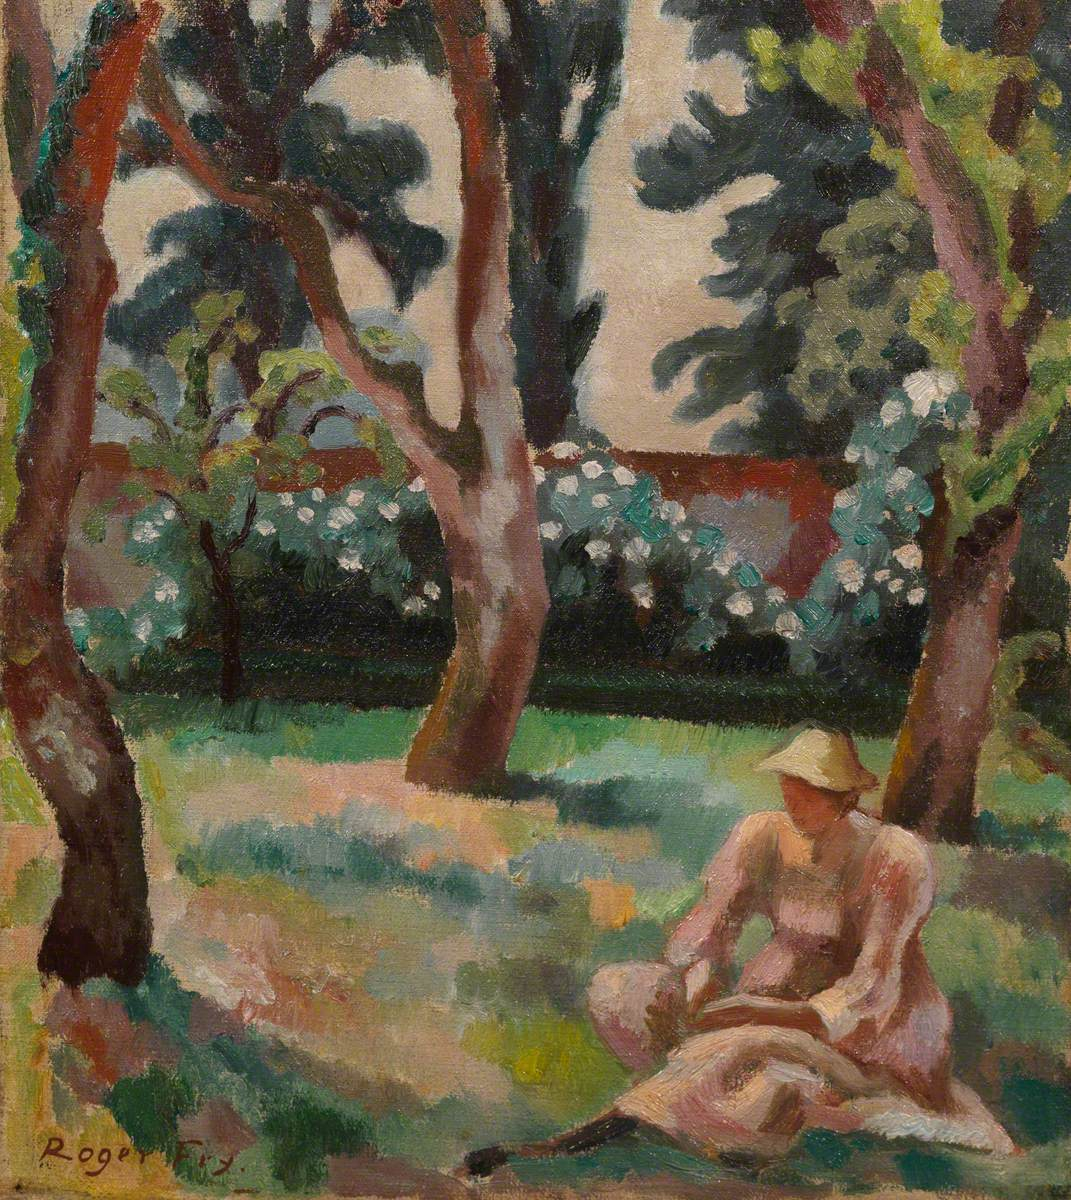 Orchard, Woman Seated in a Garden